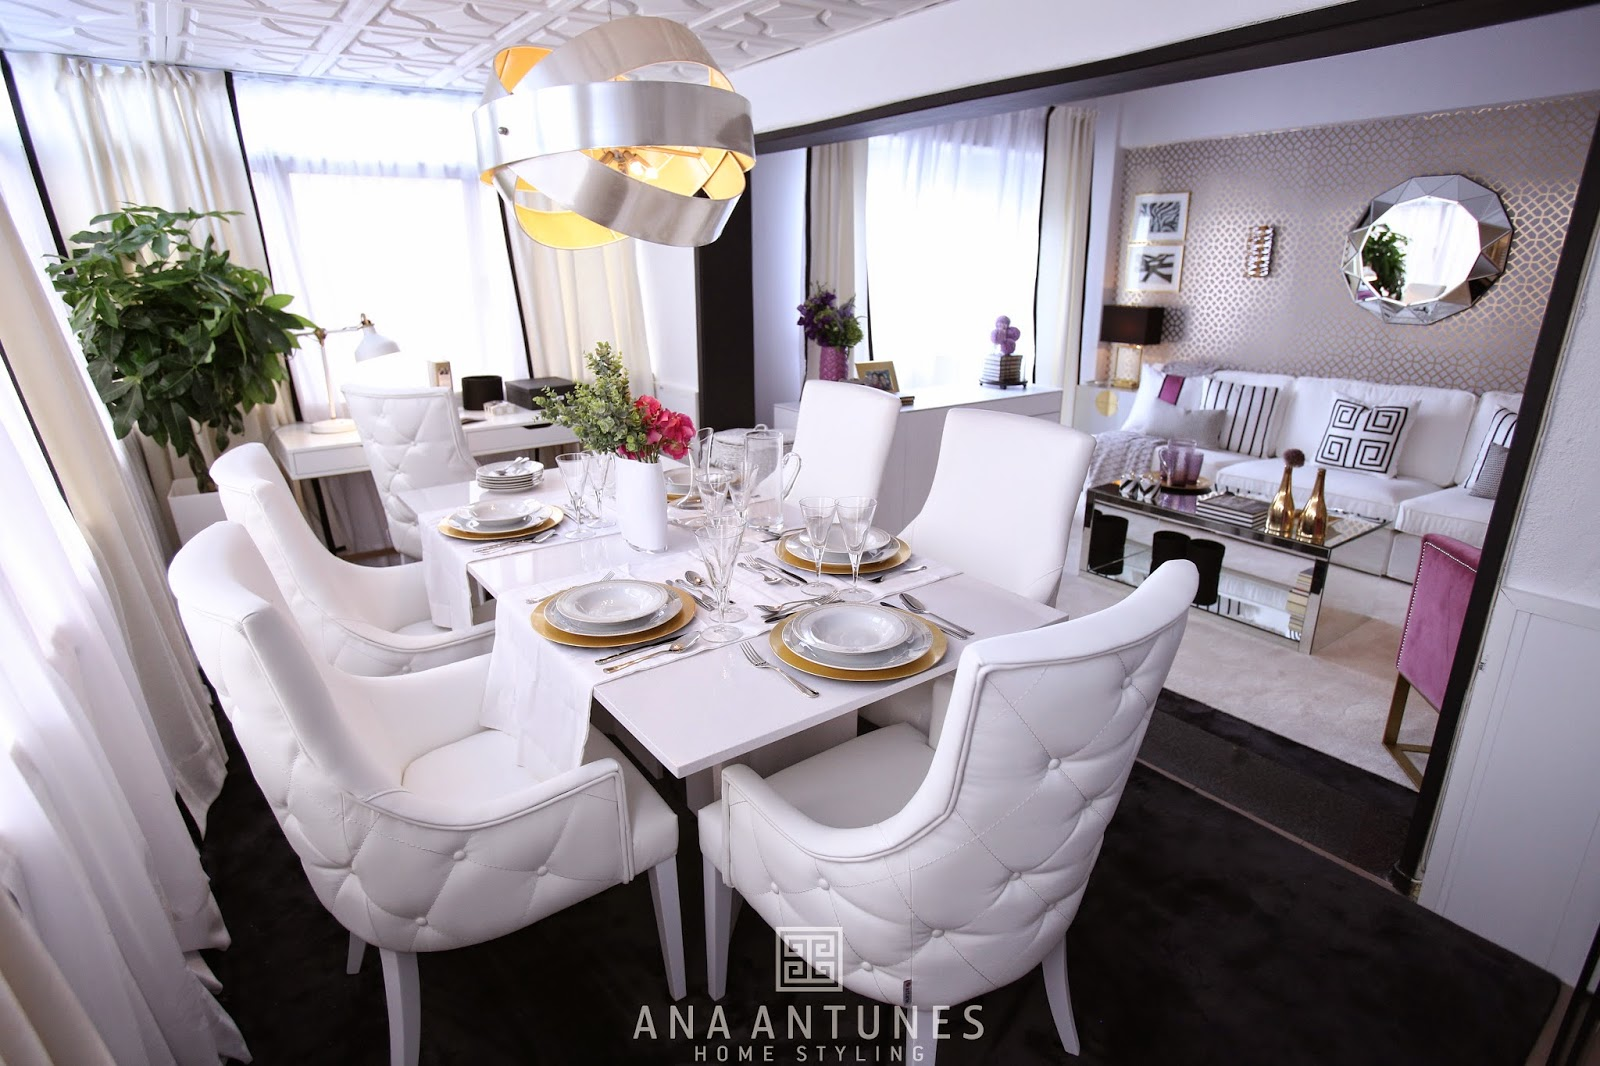 home styling ana antunes querido mudei a casa tv show 2314 gold trellis room credits. Black Bedroom Furniture Sets. Home Design Ideas